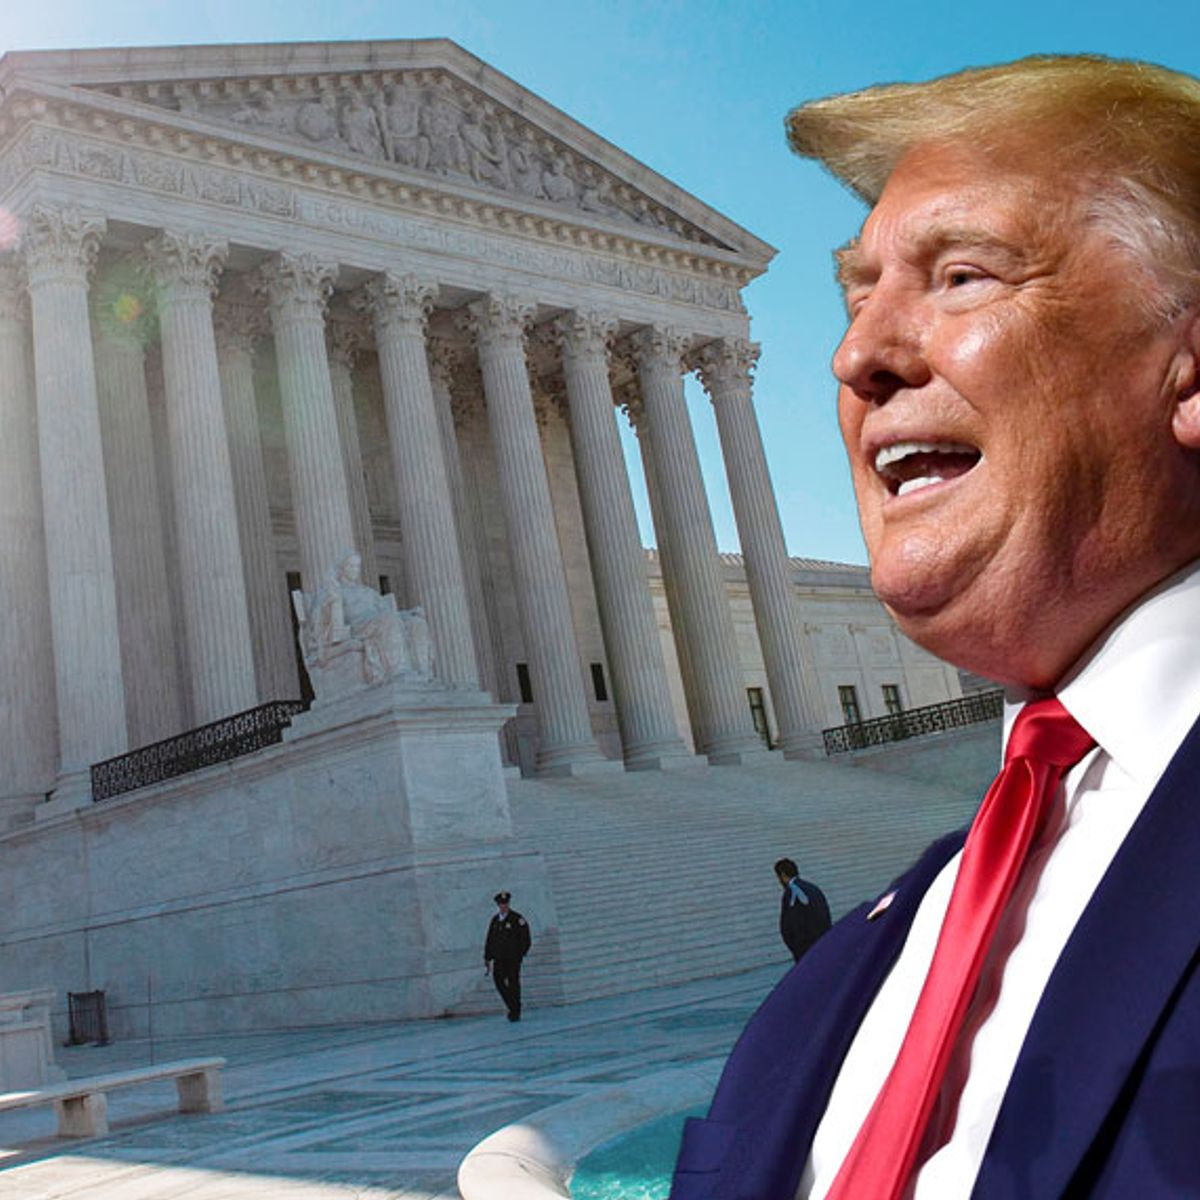 Outrage after Supreme Court allows Trump's public charge rule to take effect